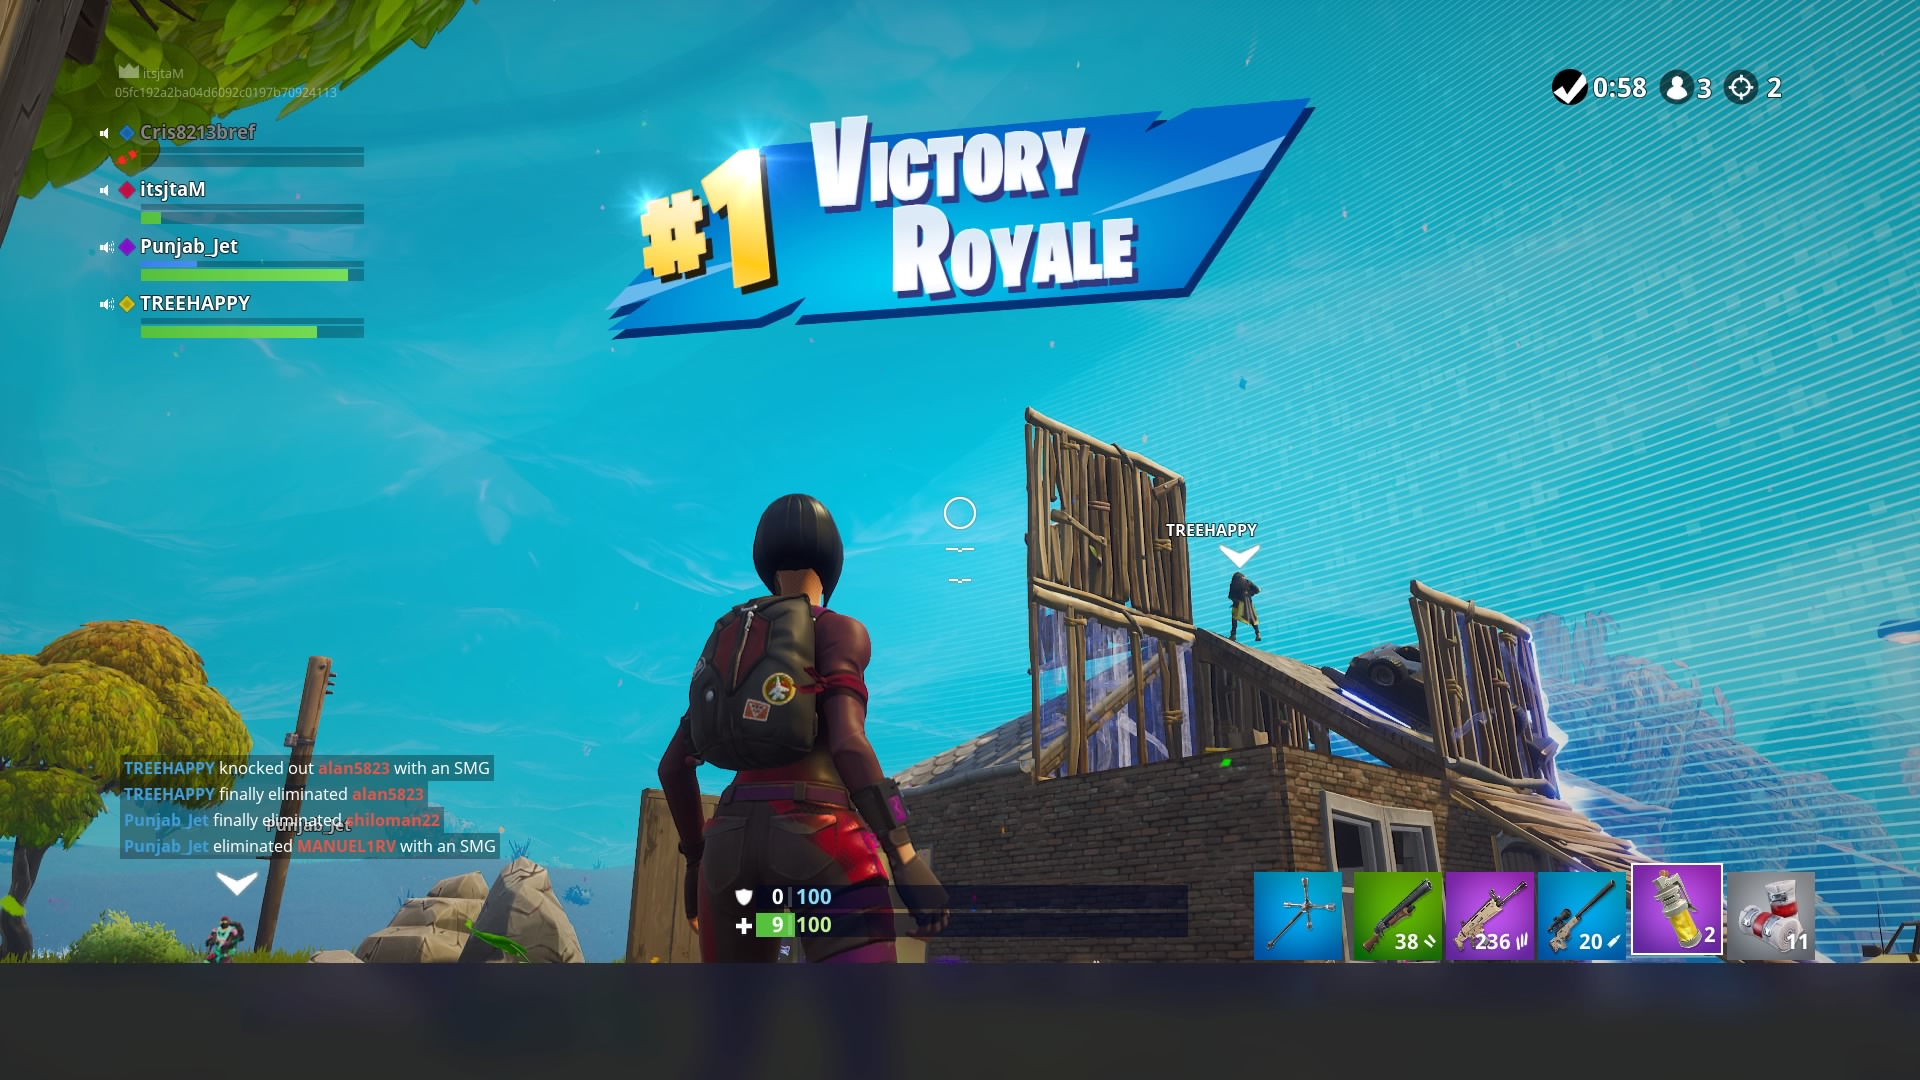 Fortnite Victory Royale Desktop Wallpaper 64827 1920x1080px